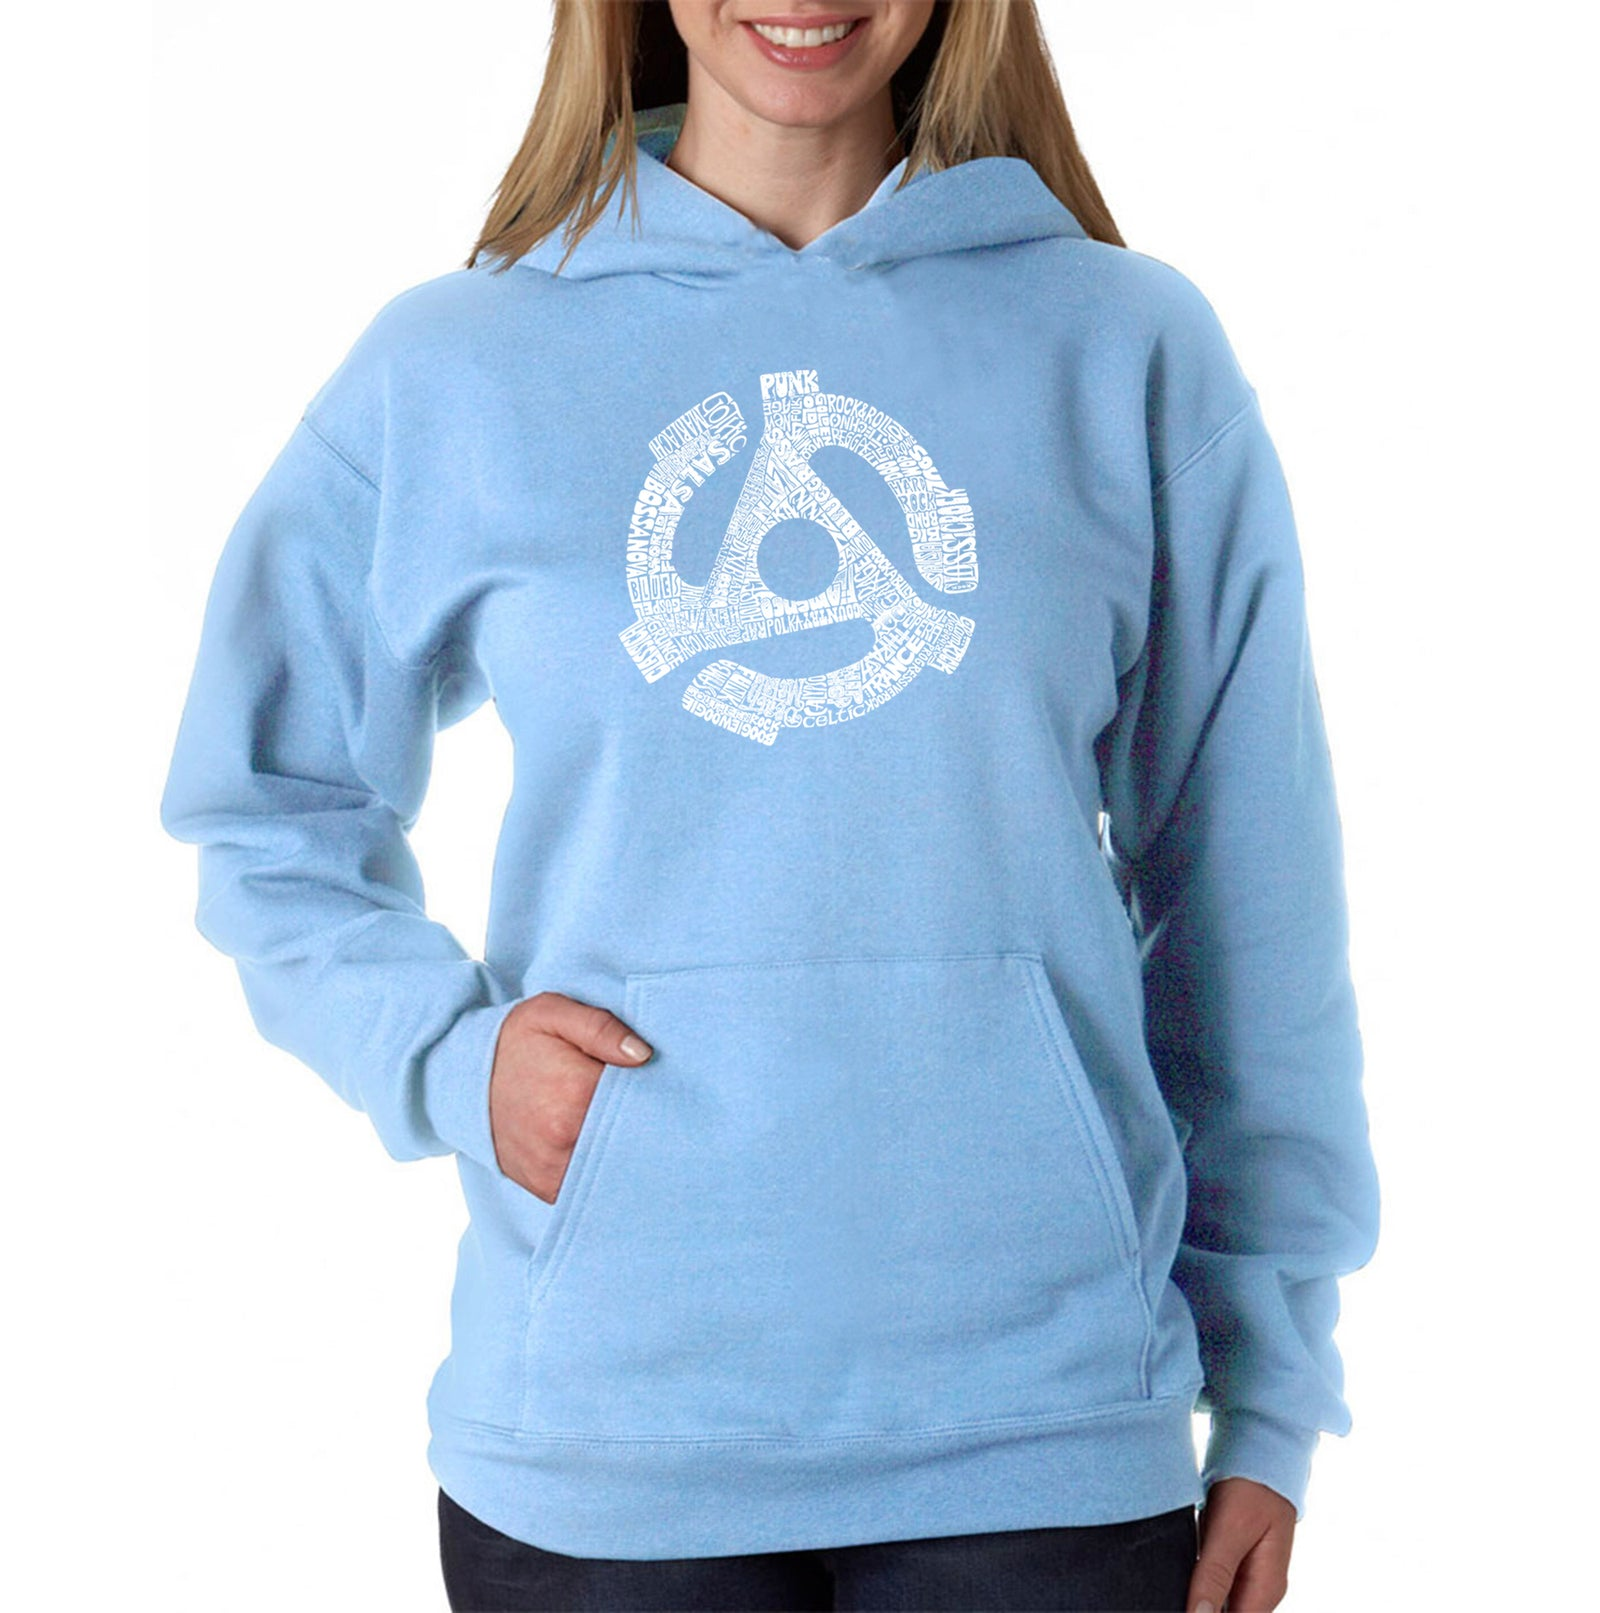 Women's Hooded Sweatshirt -Record Adapter